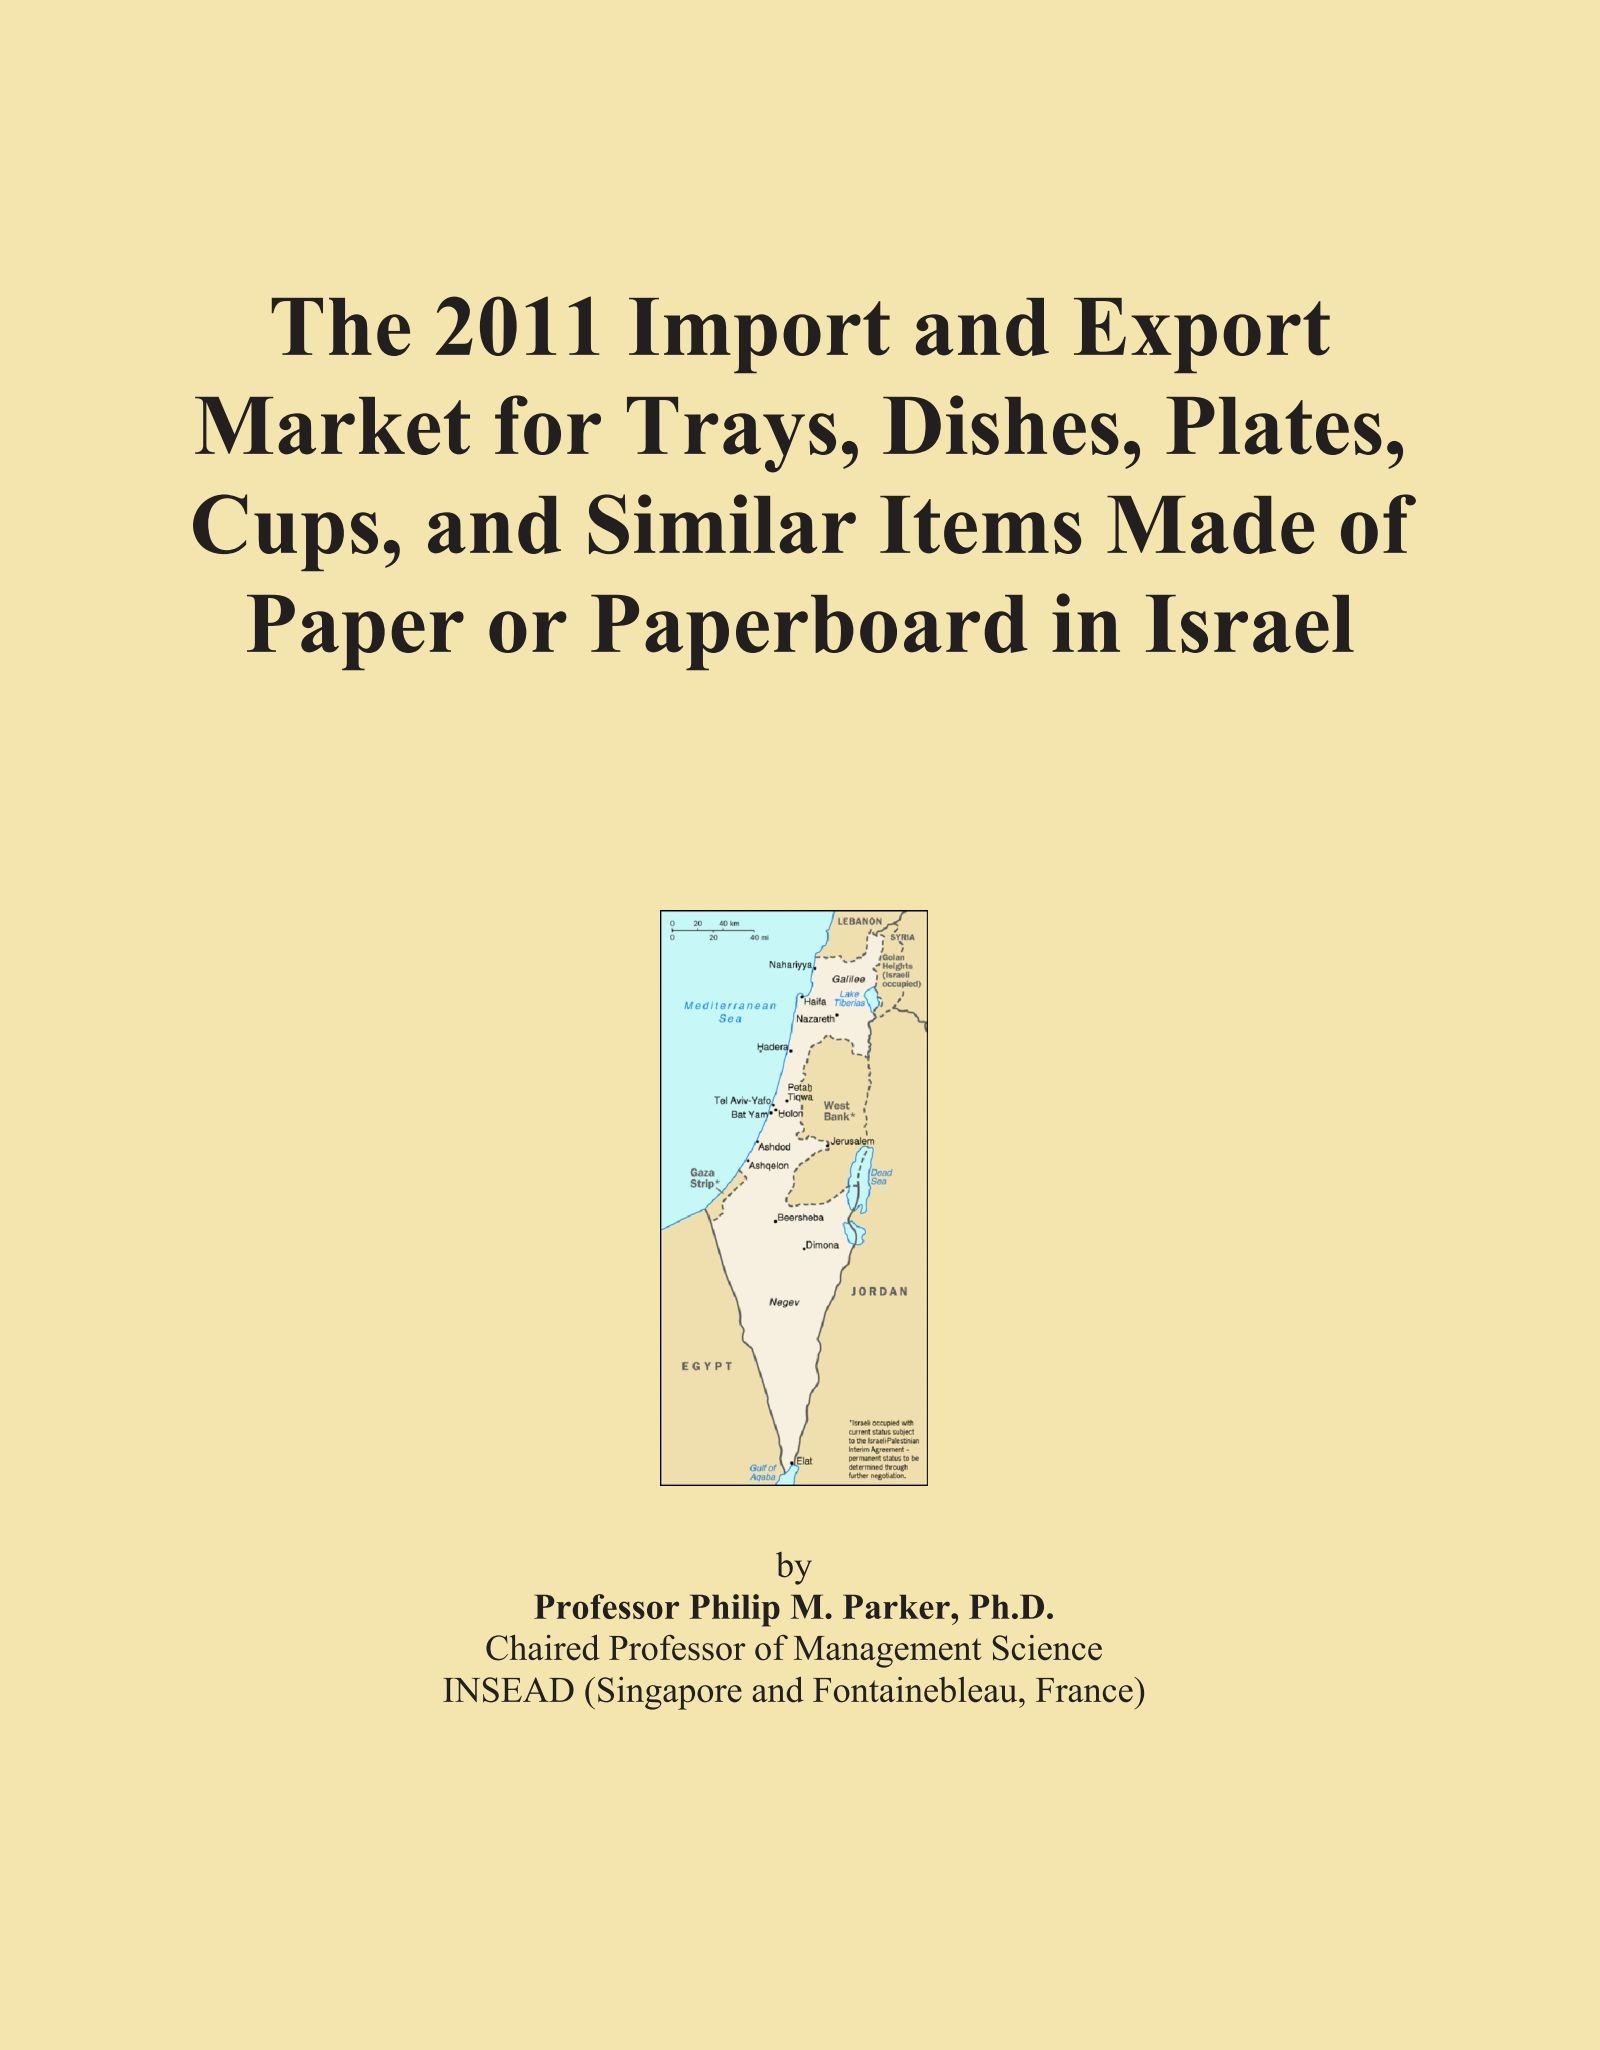 Download The 2011 Import and Export Market for Trays, Dishes, Plates, Cups, and Similar Items Made of Paper or Paperboard in Israel pdf